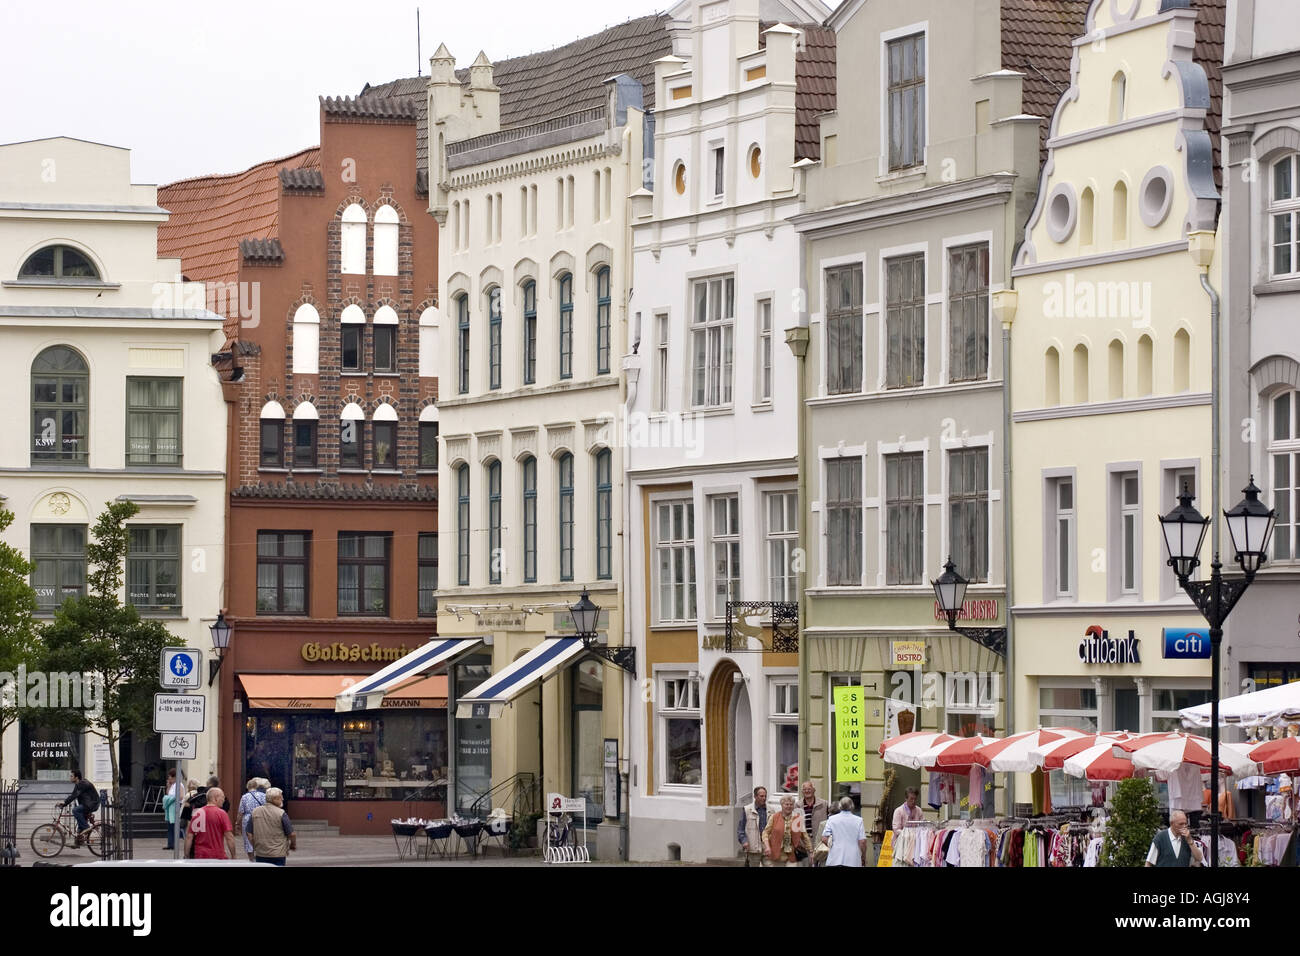 germany mecklenburg vorpommern framework houses at the marketplace in the old town of wismar - Stock Image